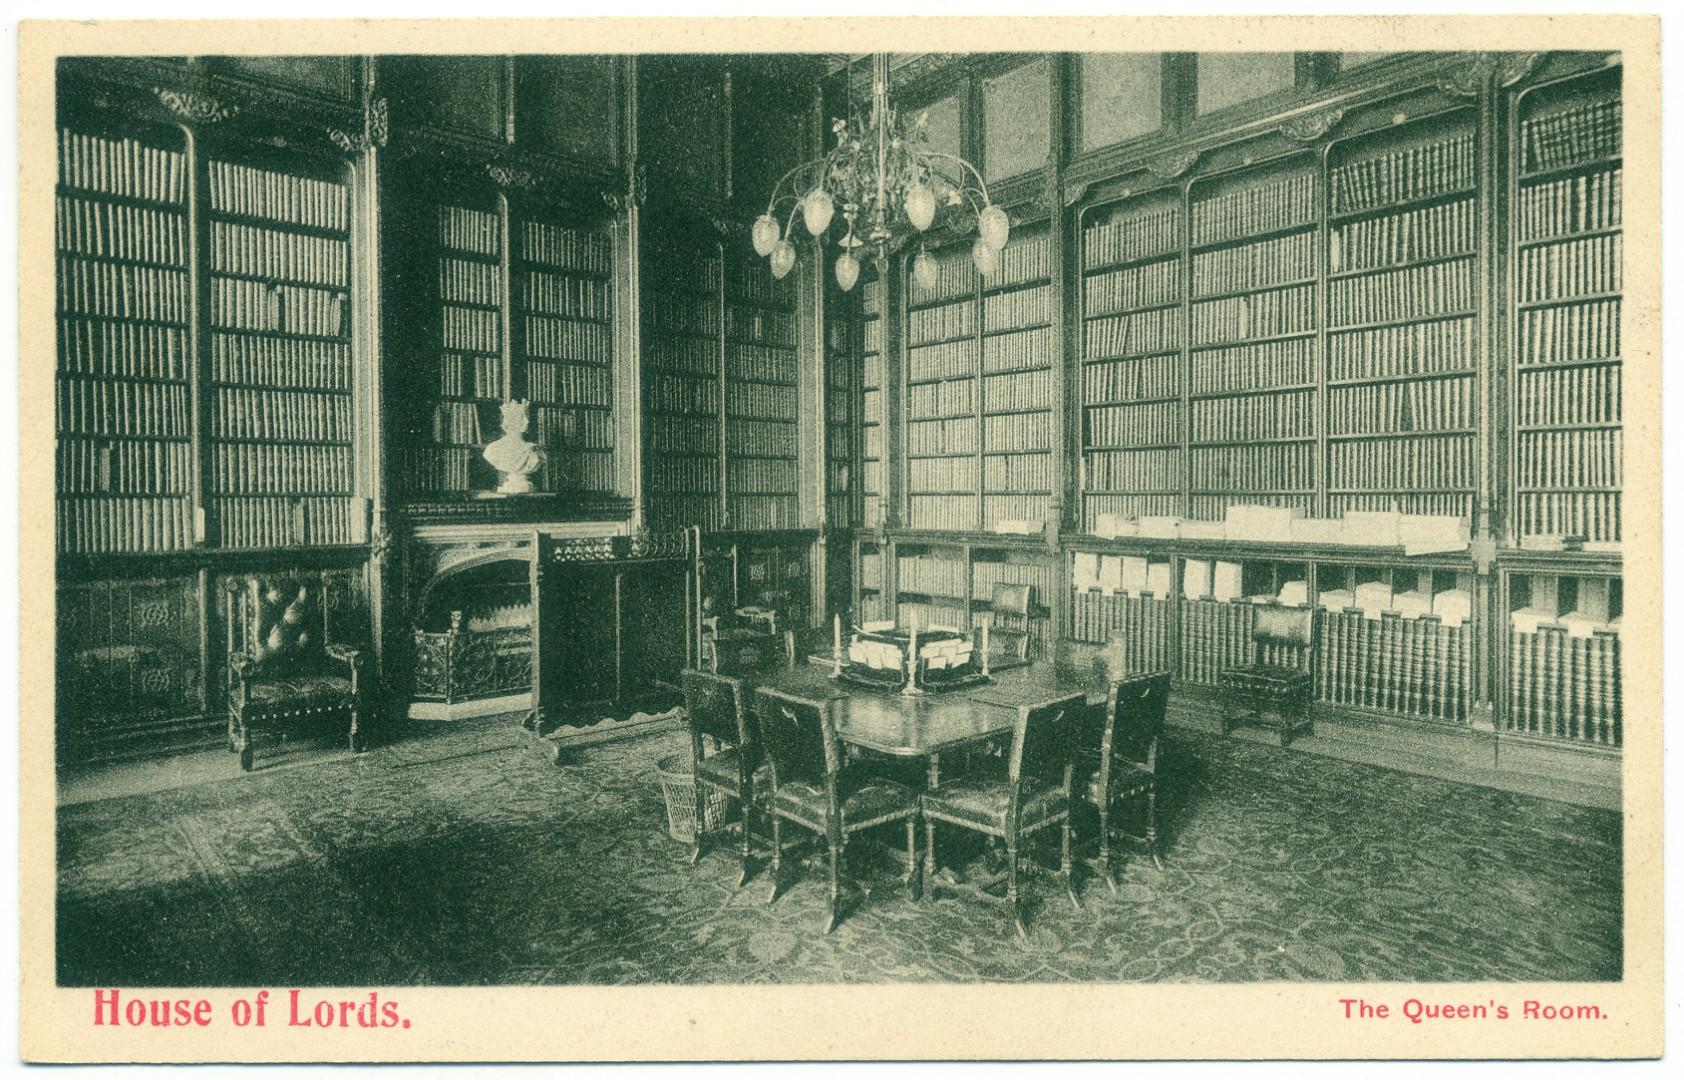 London: Palace of Westminster - House of Lords Library (Queens Room)